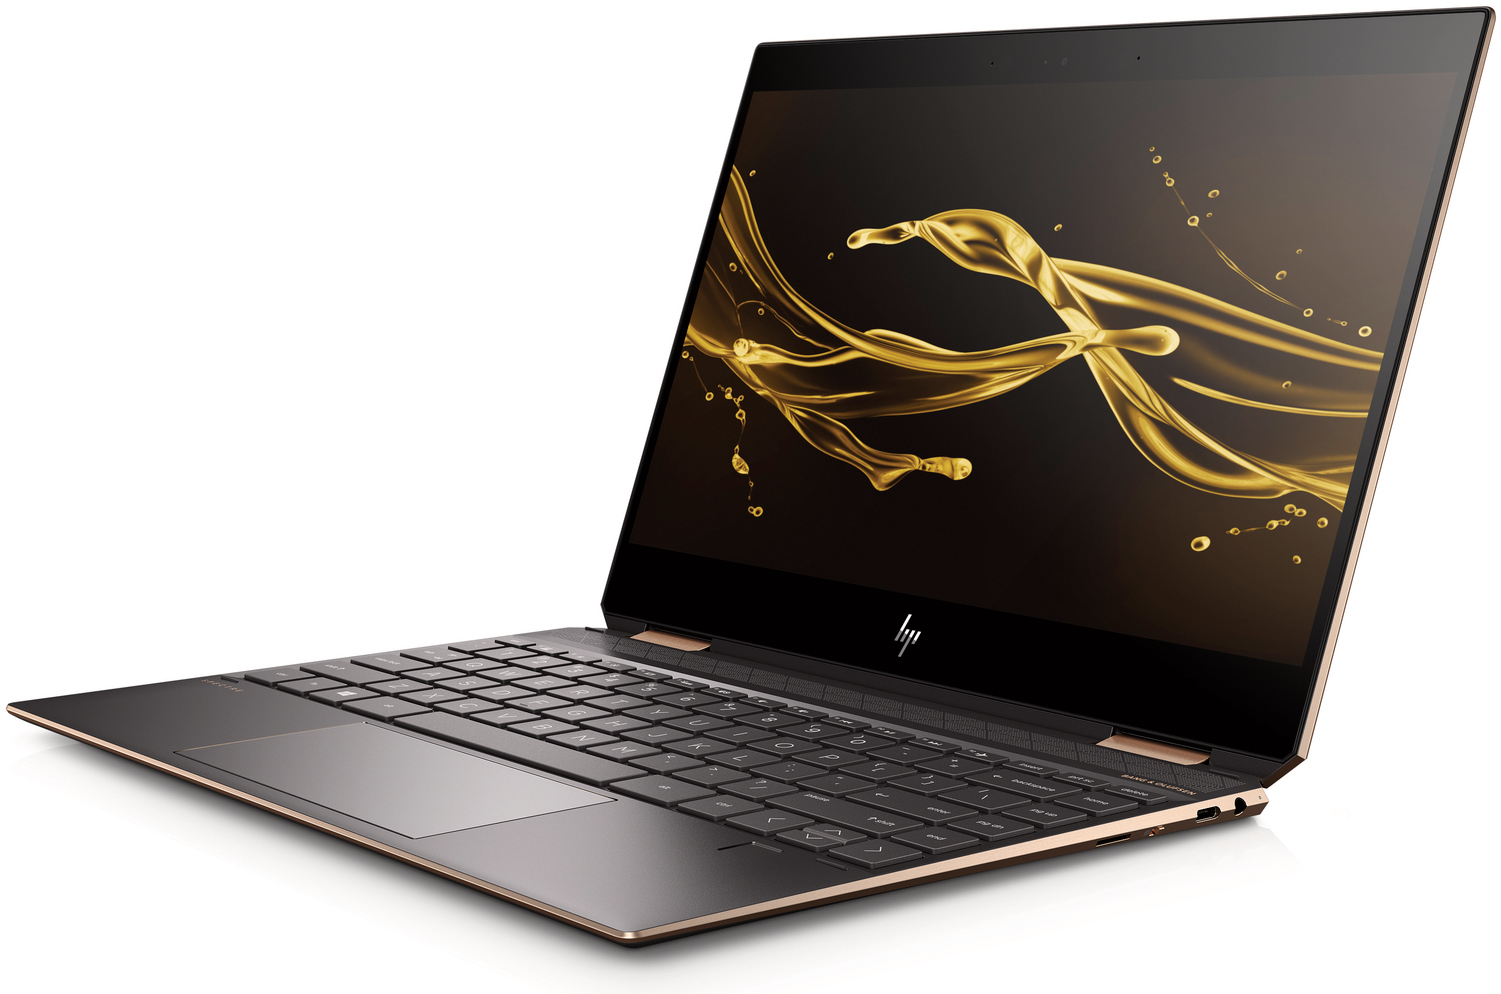 HP Launches Ultra-Thin HP Spectre 13 x360: Quad-Core i7